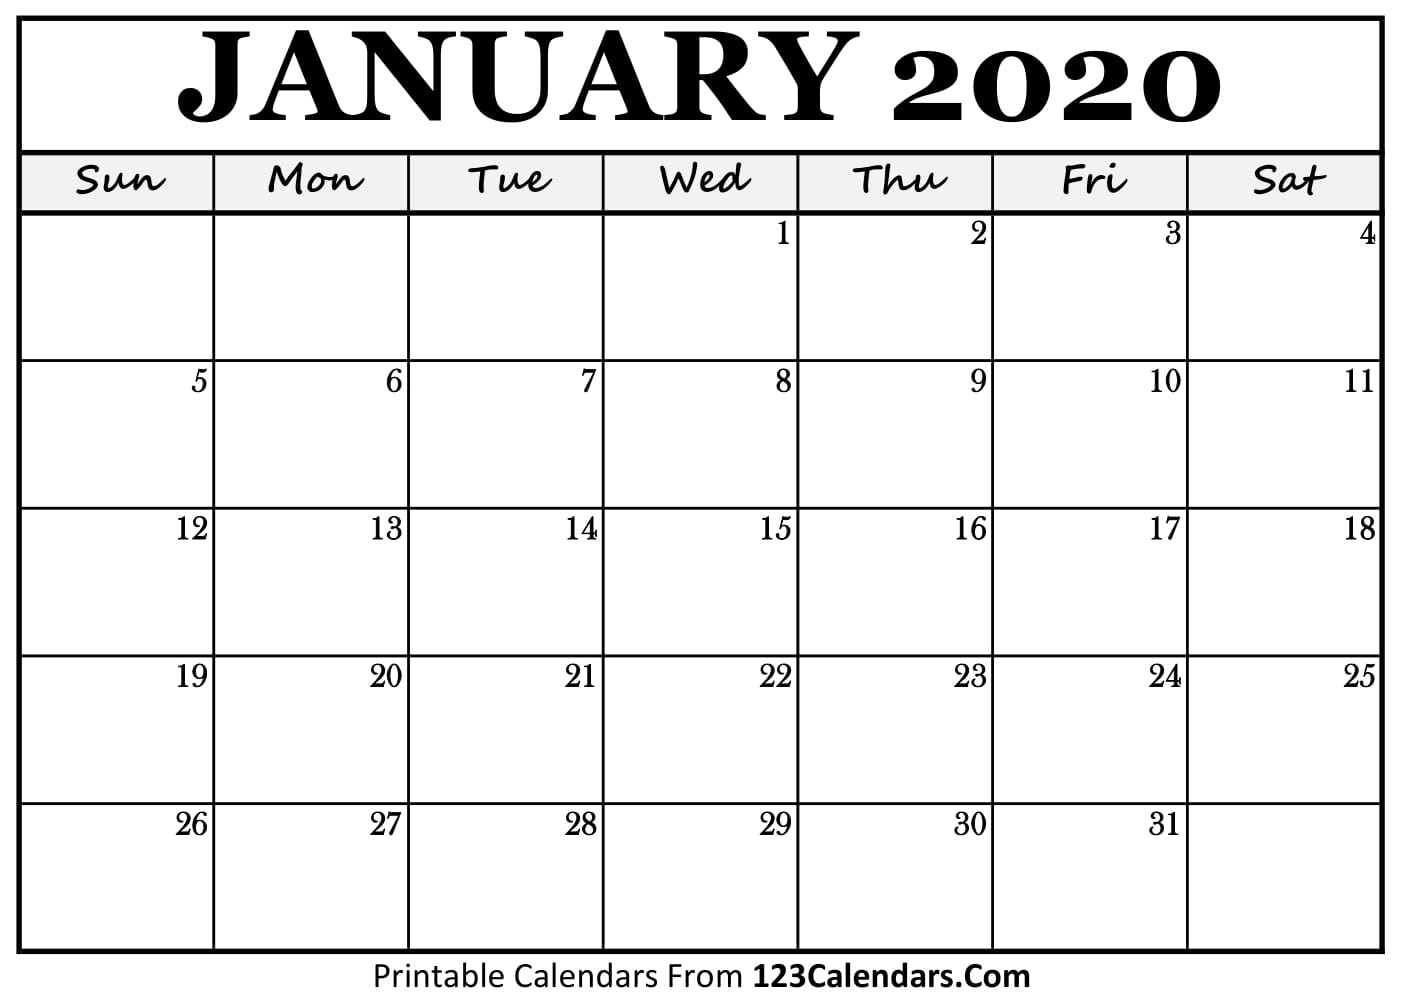 Free Printable Calendar | 123Calendars-Fre Printable Blank Calander Monthly Pages